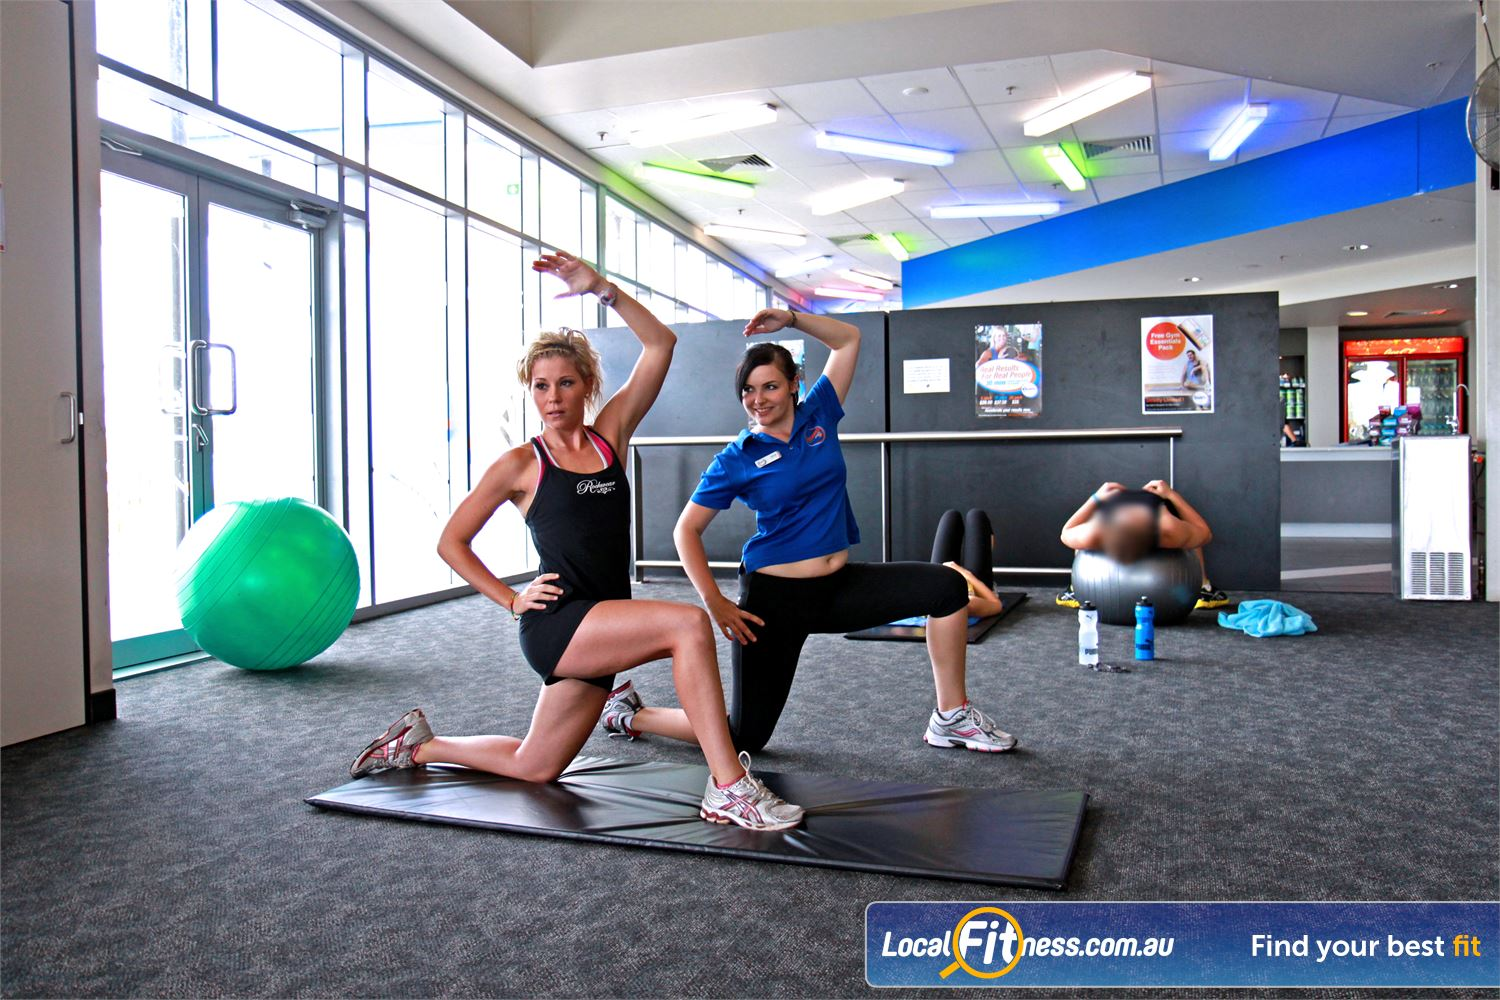 Goodlife Health Clubs Ipswich Ipswich personal trainers can tailor a stretching and ab program for you.